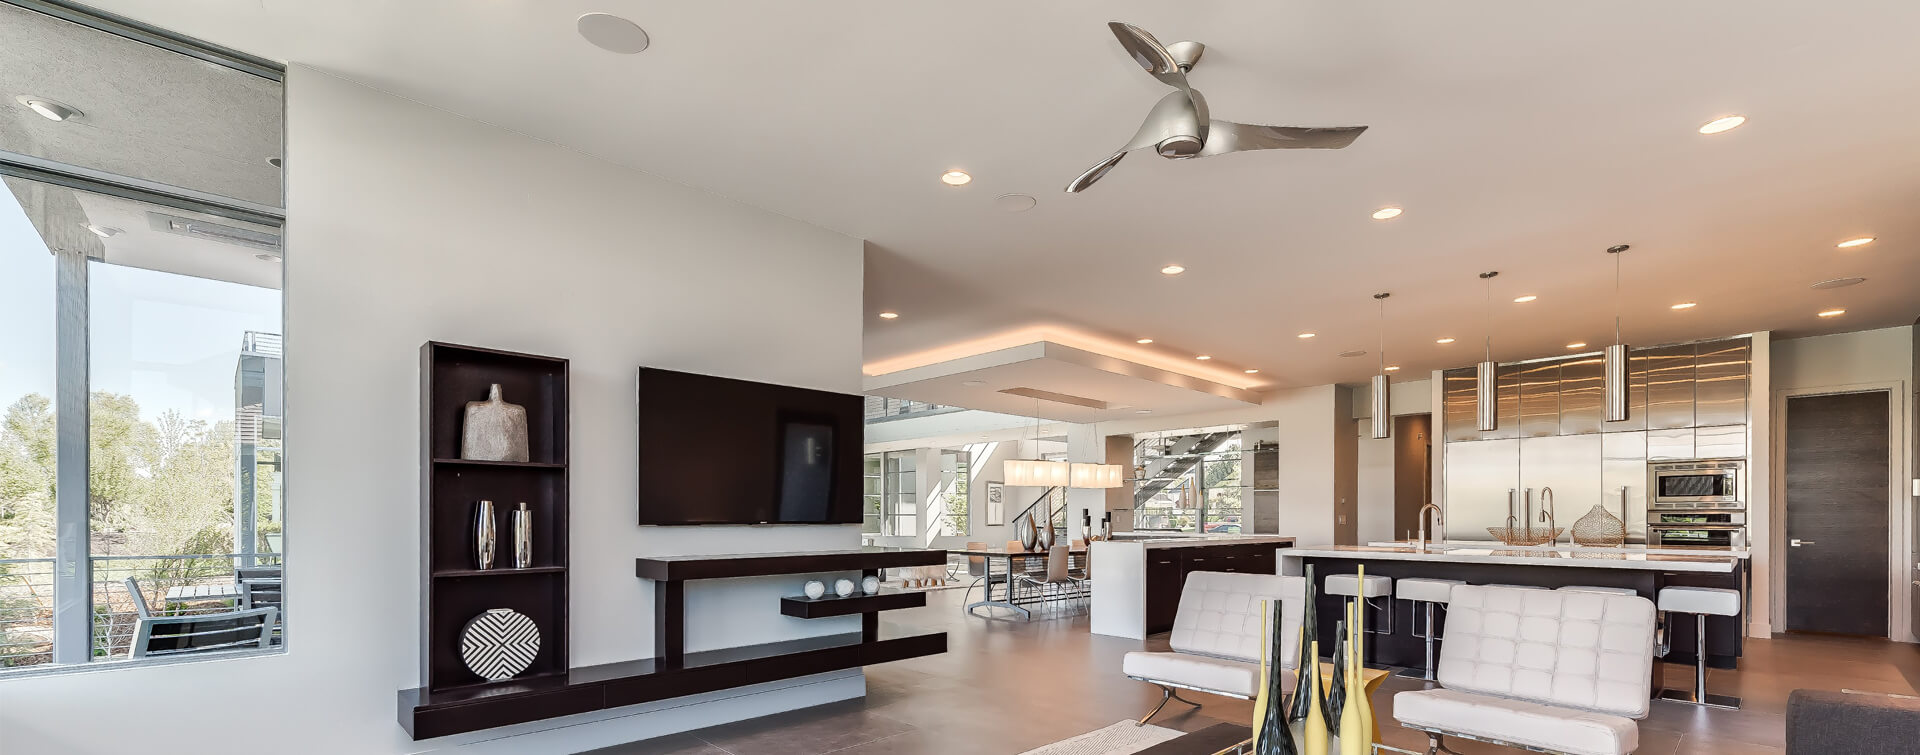 In ceiling speakers in a white open space large modern kitchen